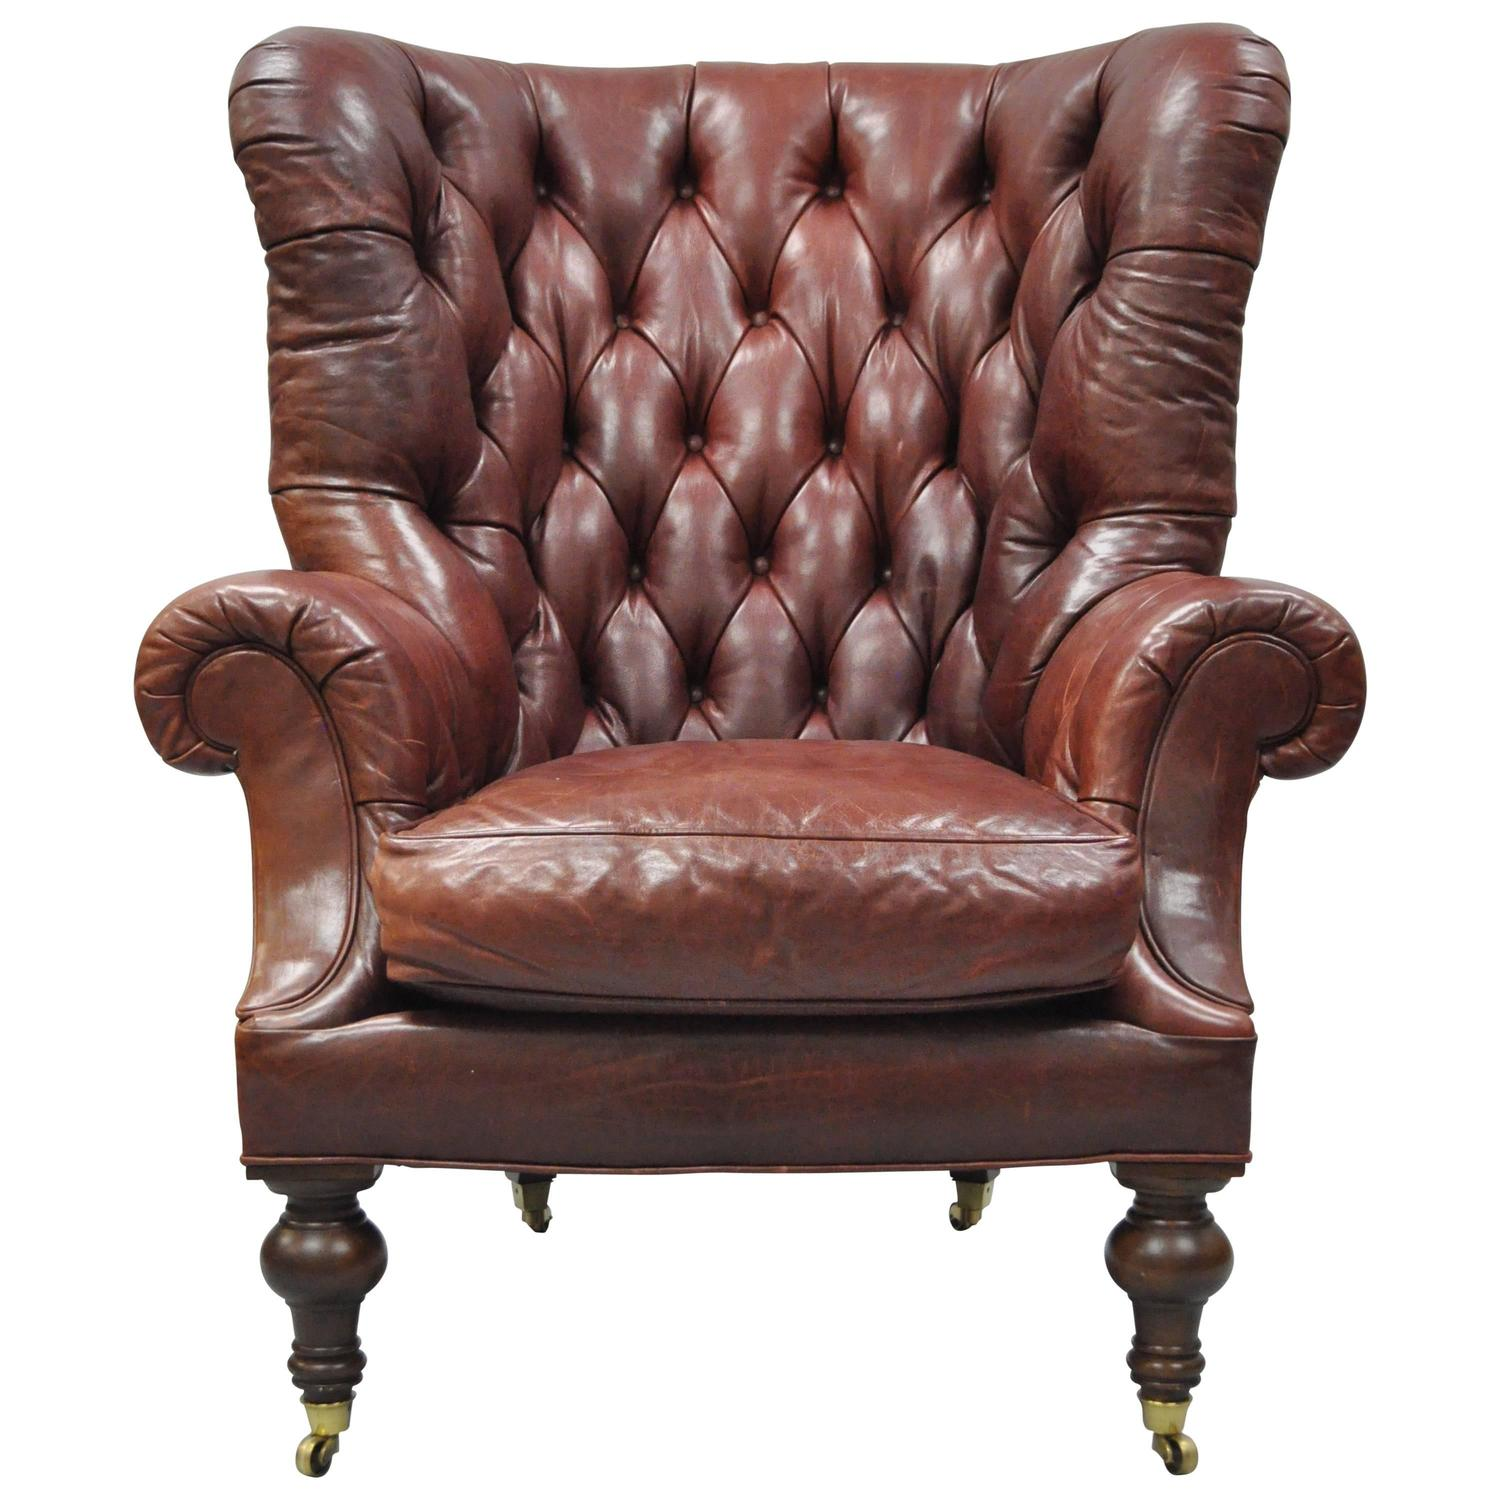 Oversized Wingback Chair Oversized Lillian August Brown Tufted Leather English Chesterfield Wing Chair